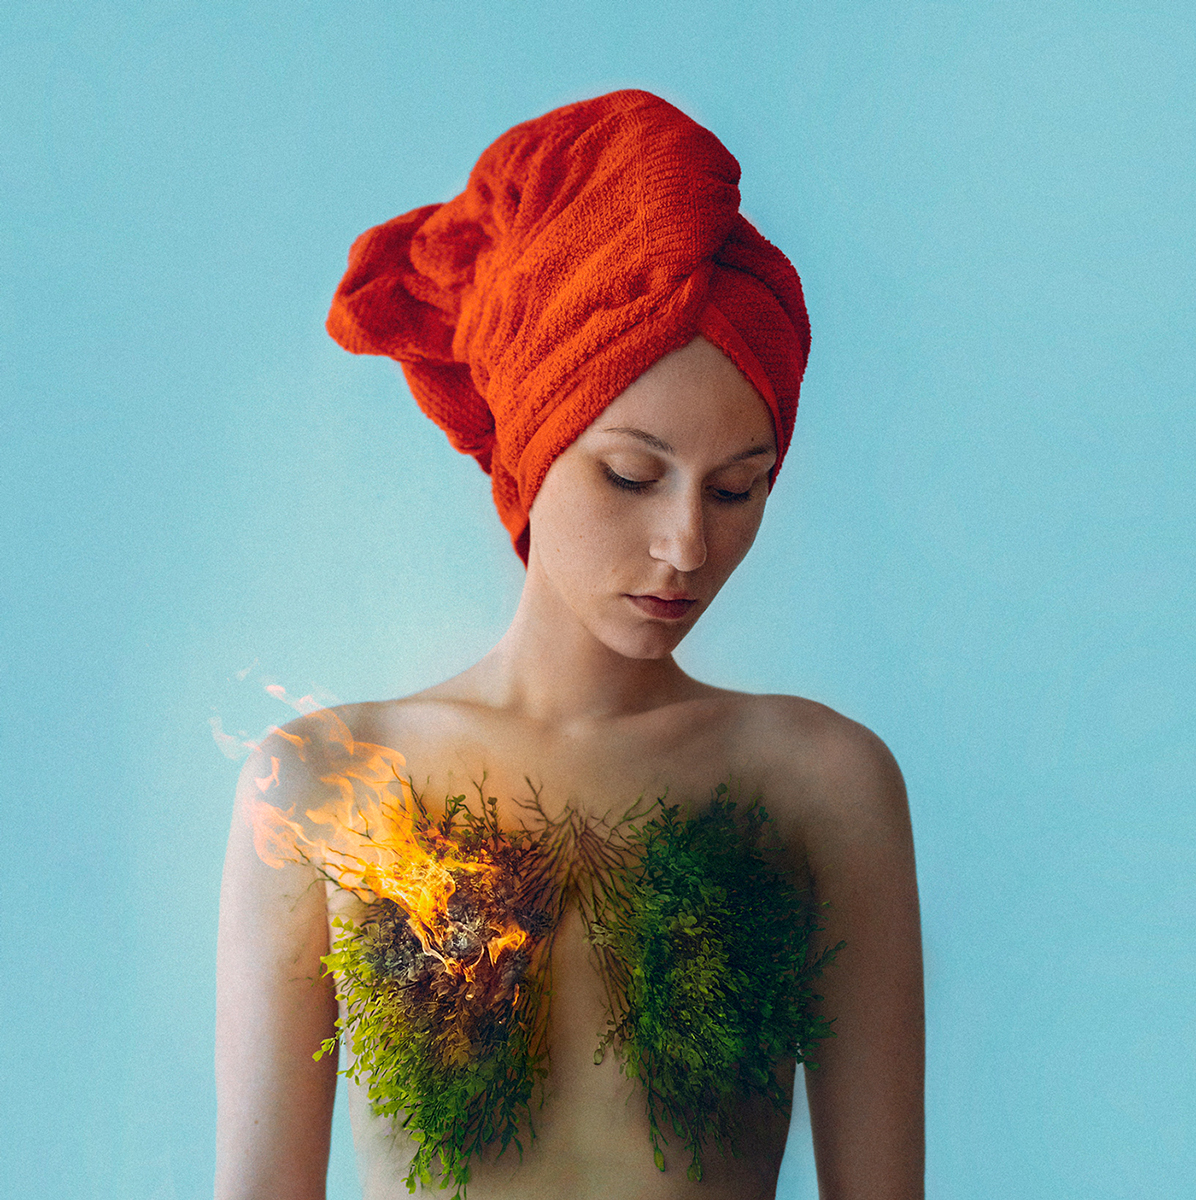 flora borsi recent work4